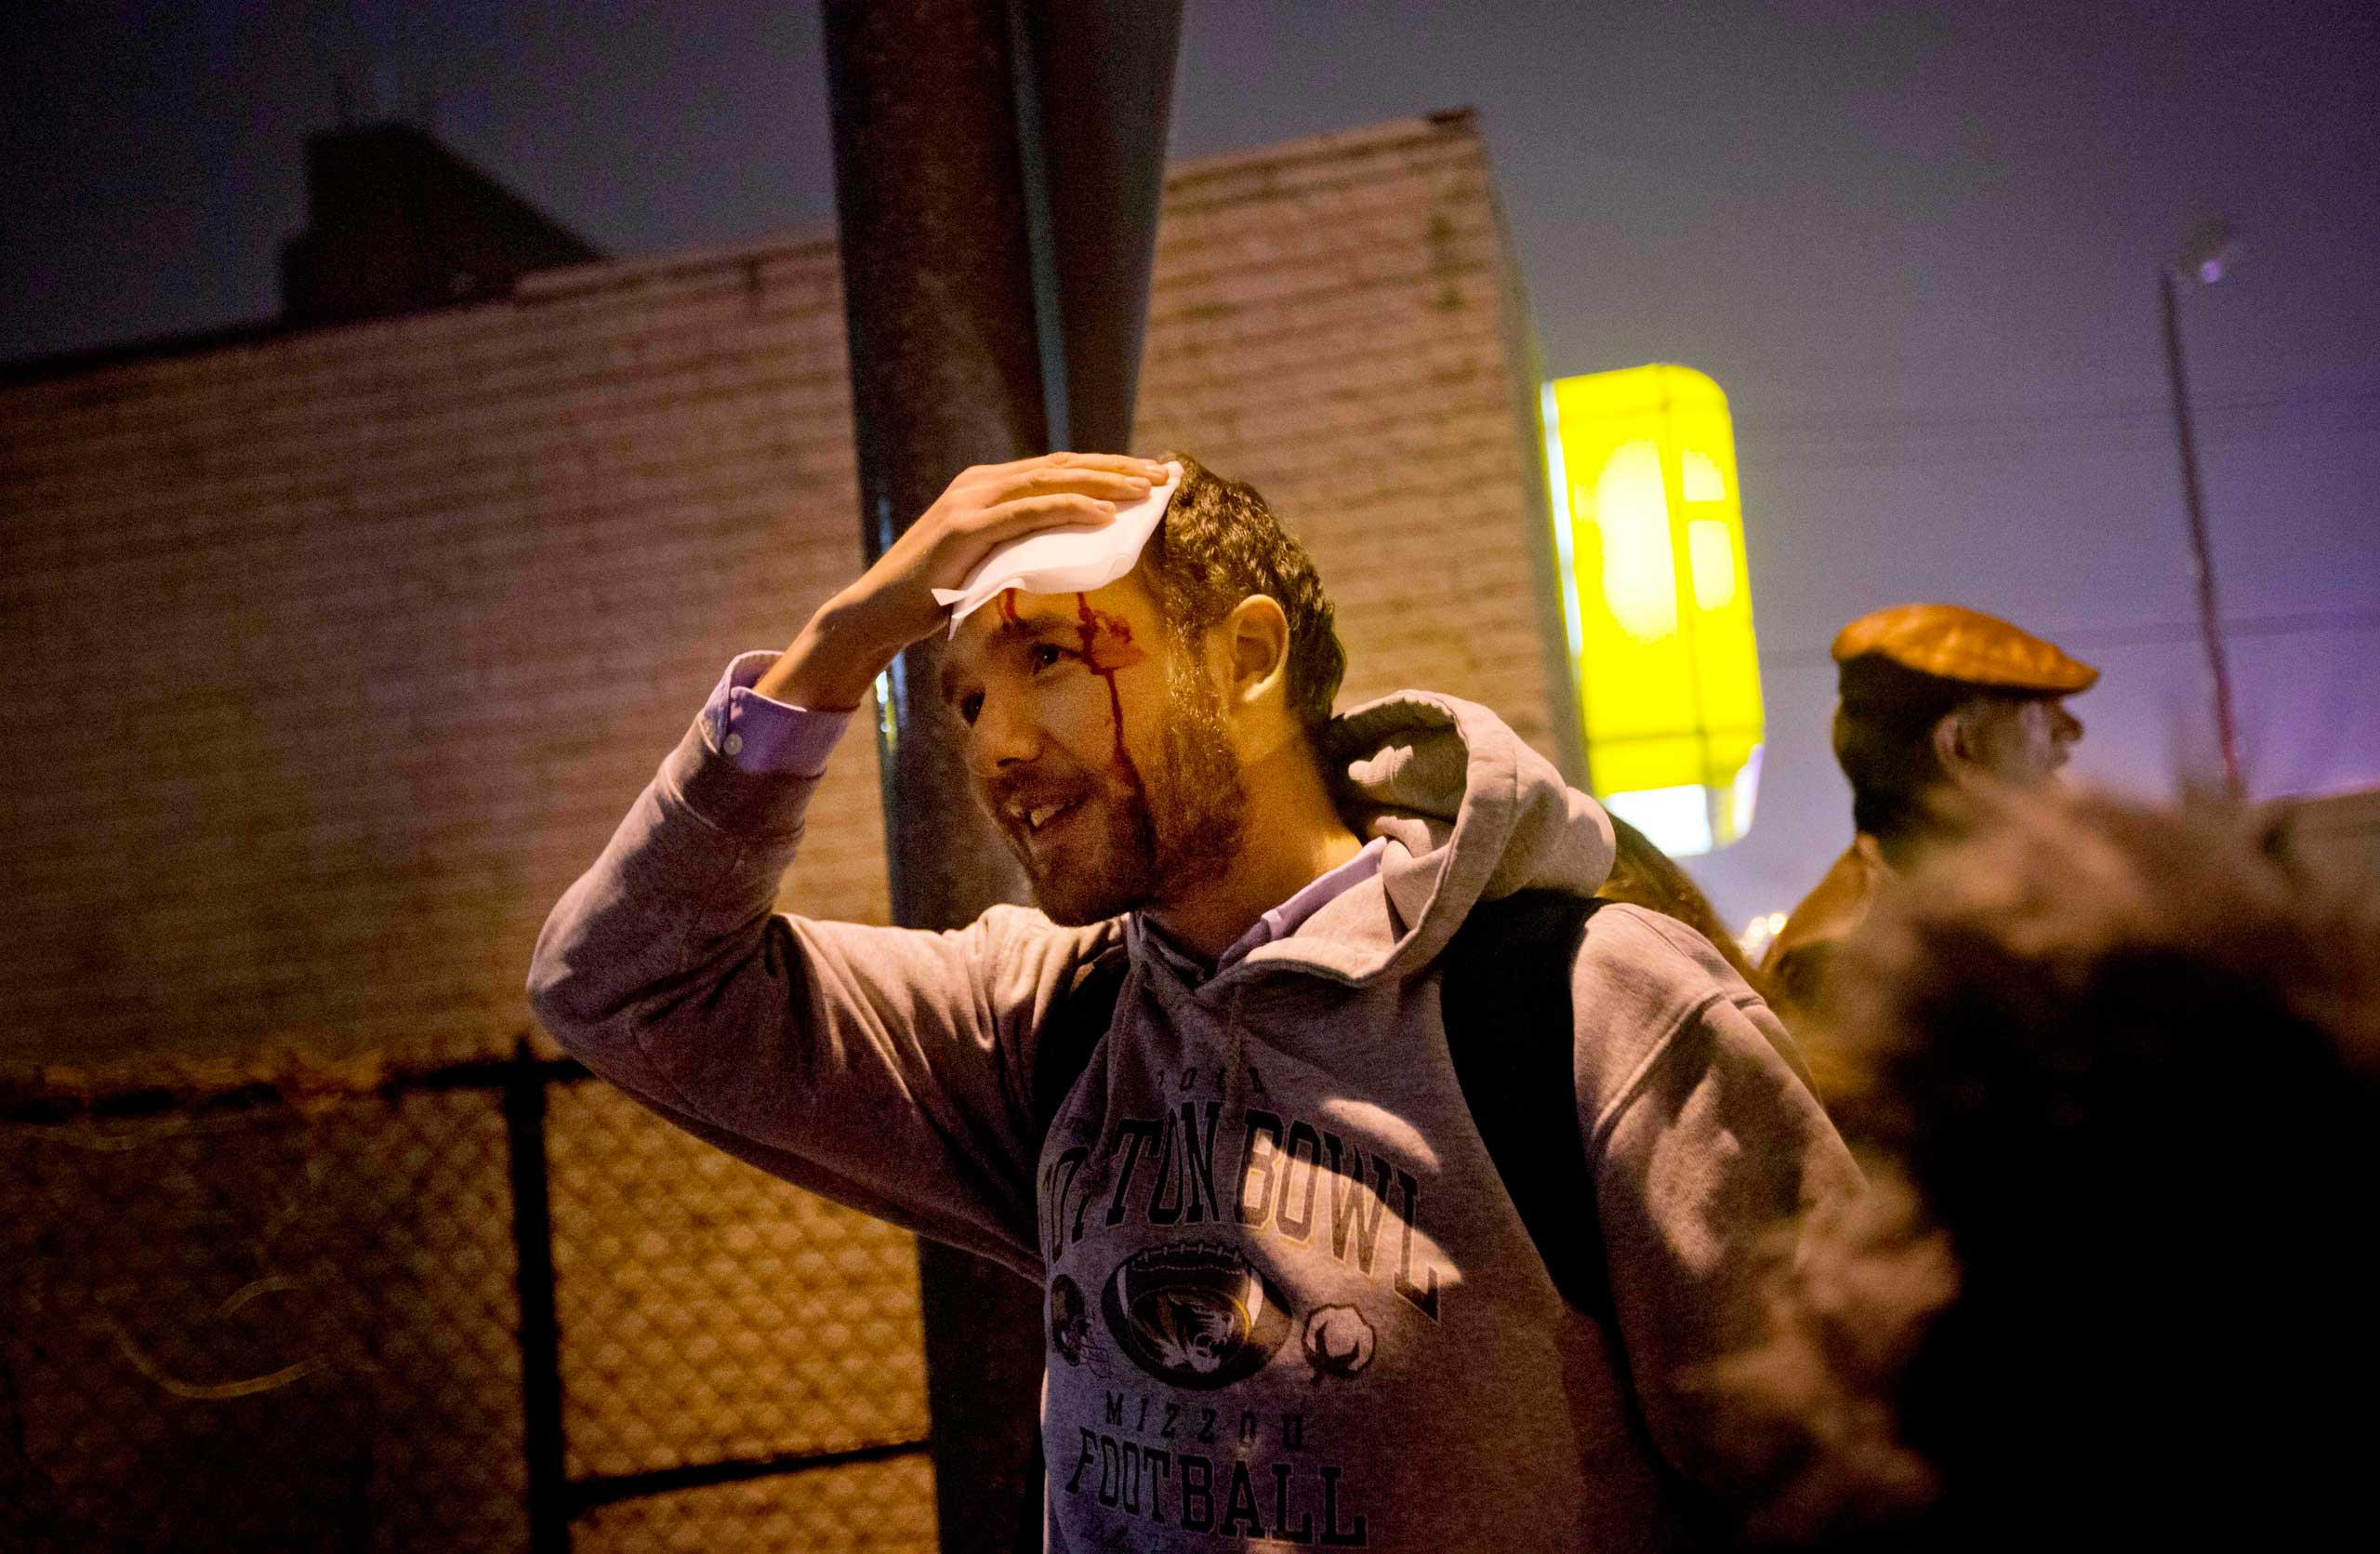 Matt Pearce, a reporter with the Los Angeles <i>Times</i>, holds his head after getting clocked with a rock thrown into the crowd during a protest in the streets in St. Louis on Nov. 23, 2014.